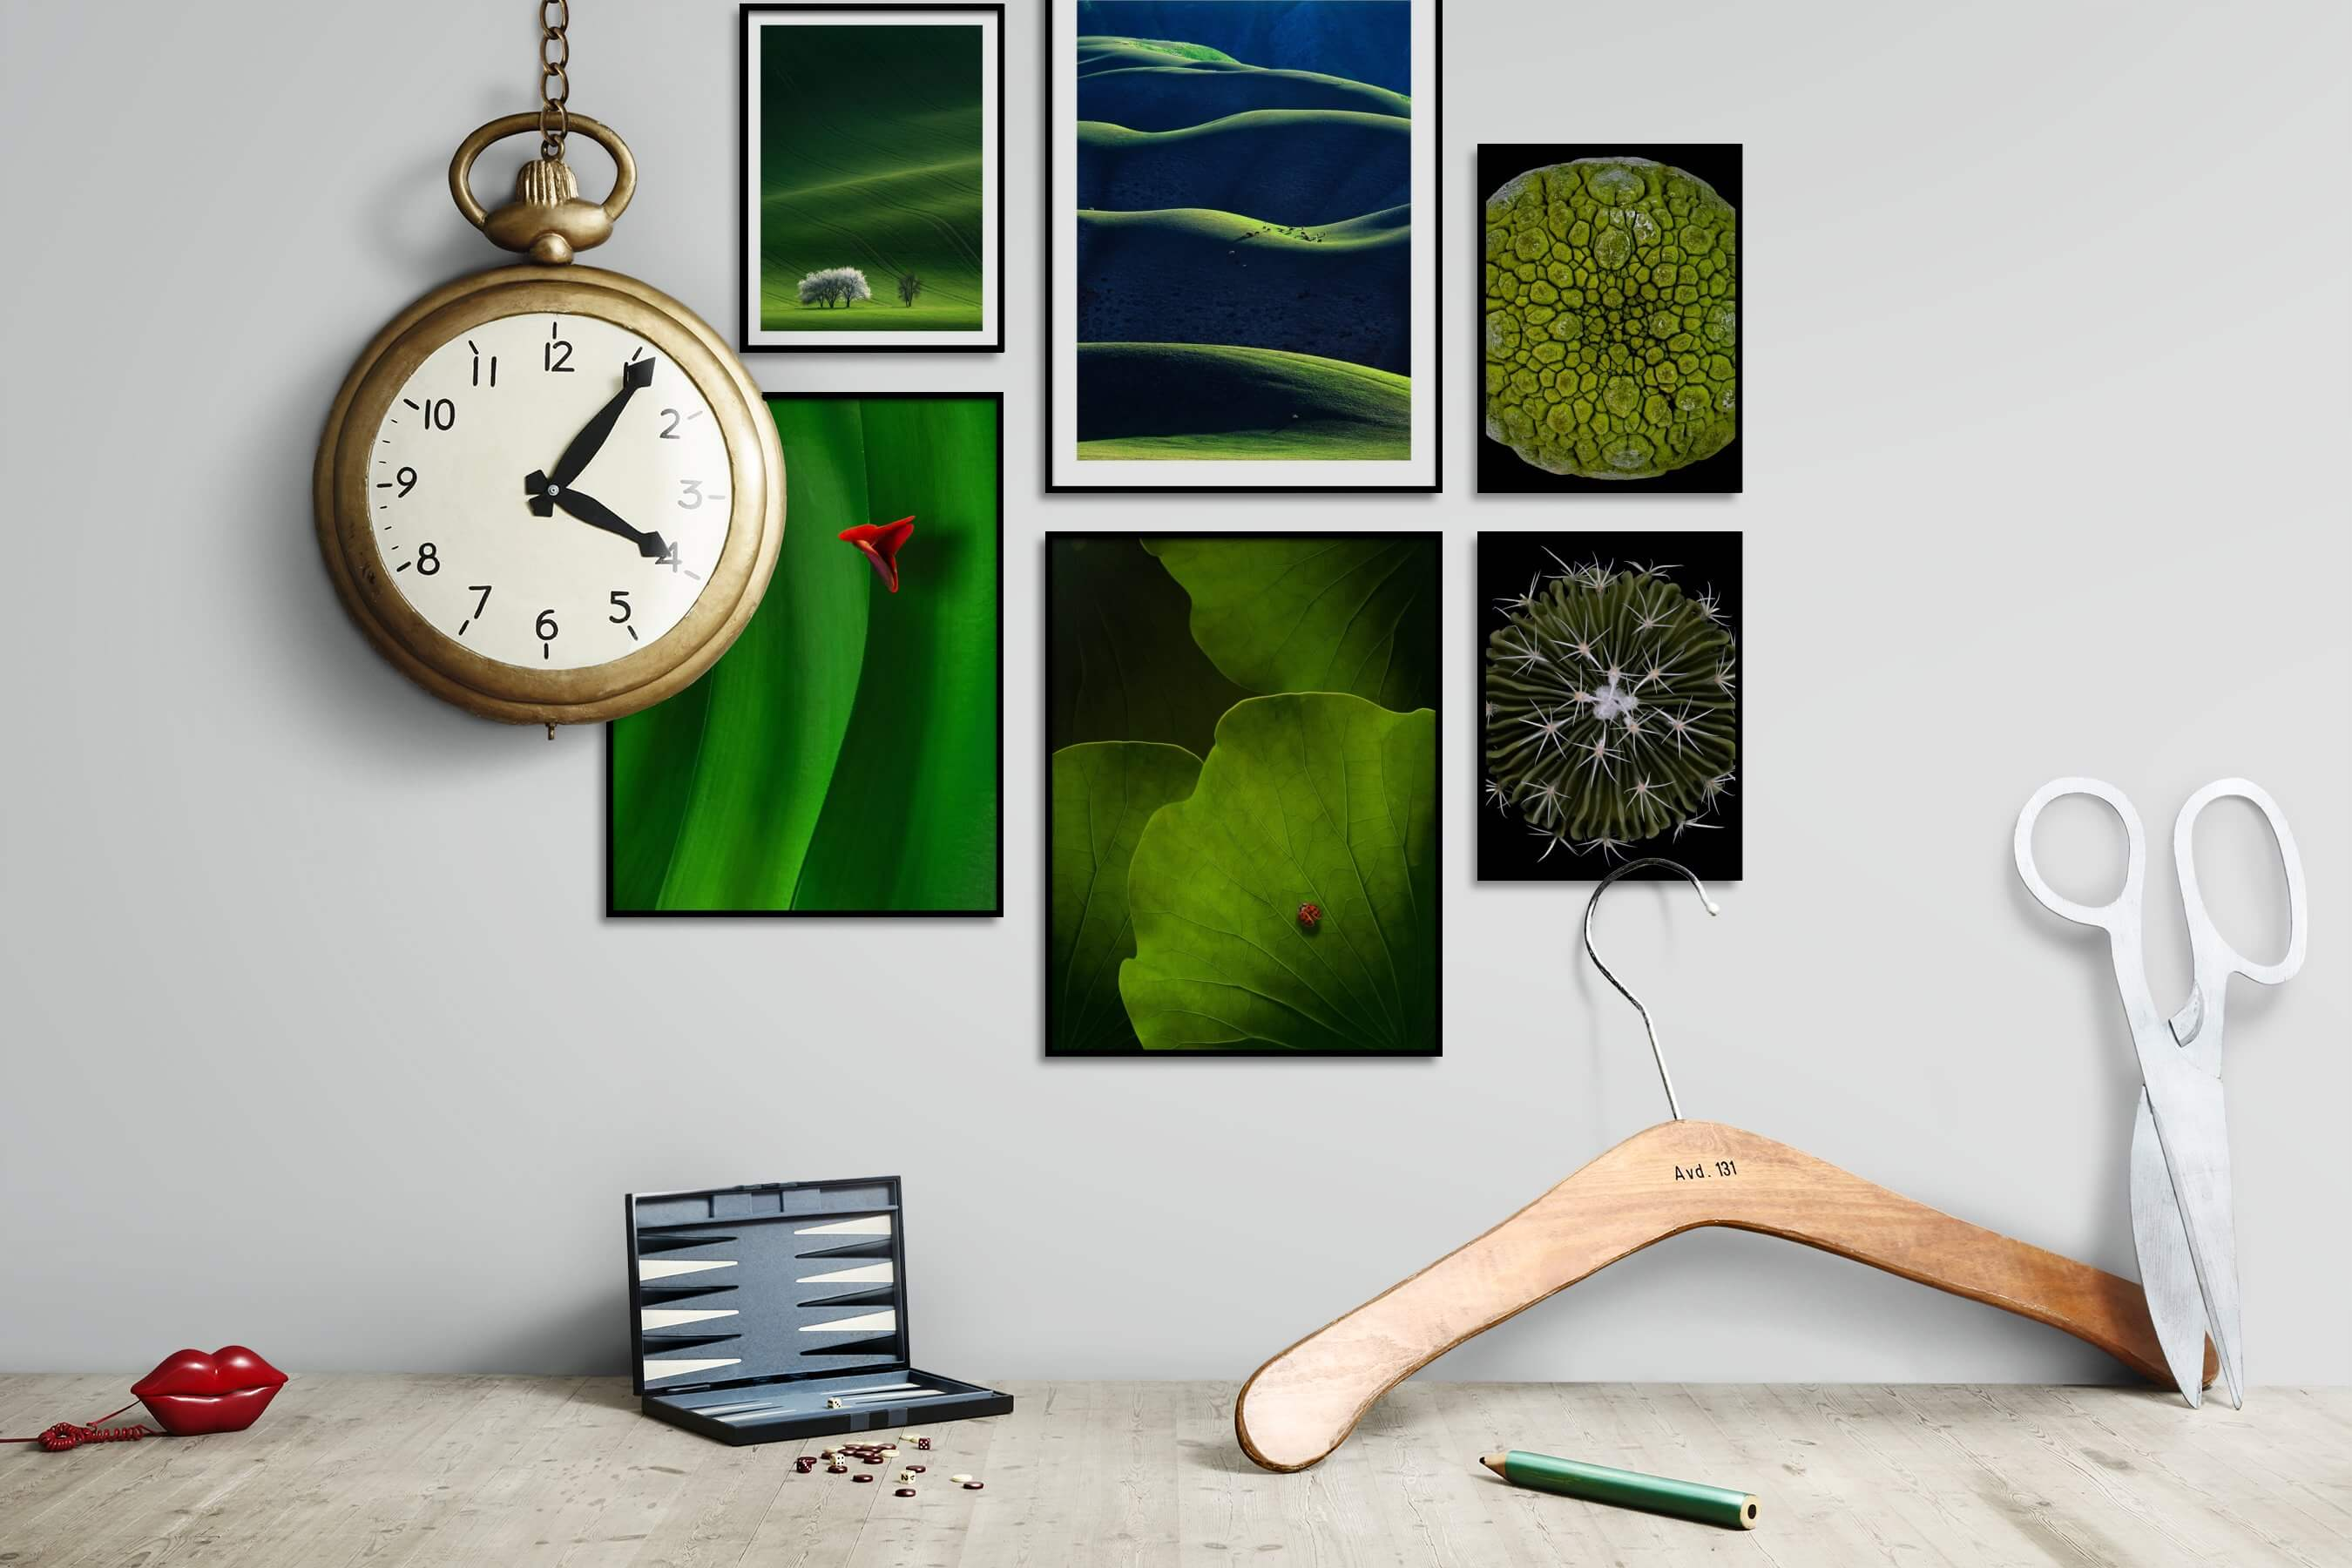 Gallery wall idea with six framed pictures arranged on a wall depicting For the Minimalist, Country Life, For the Moderate, Animals, Flowers & Plants, and Dark Tones